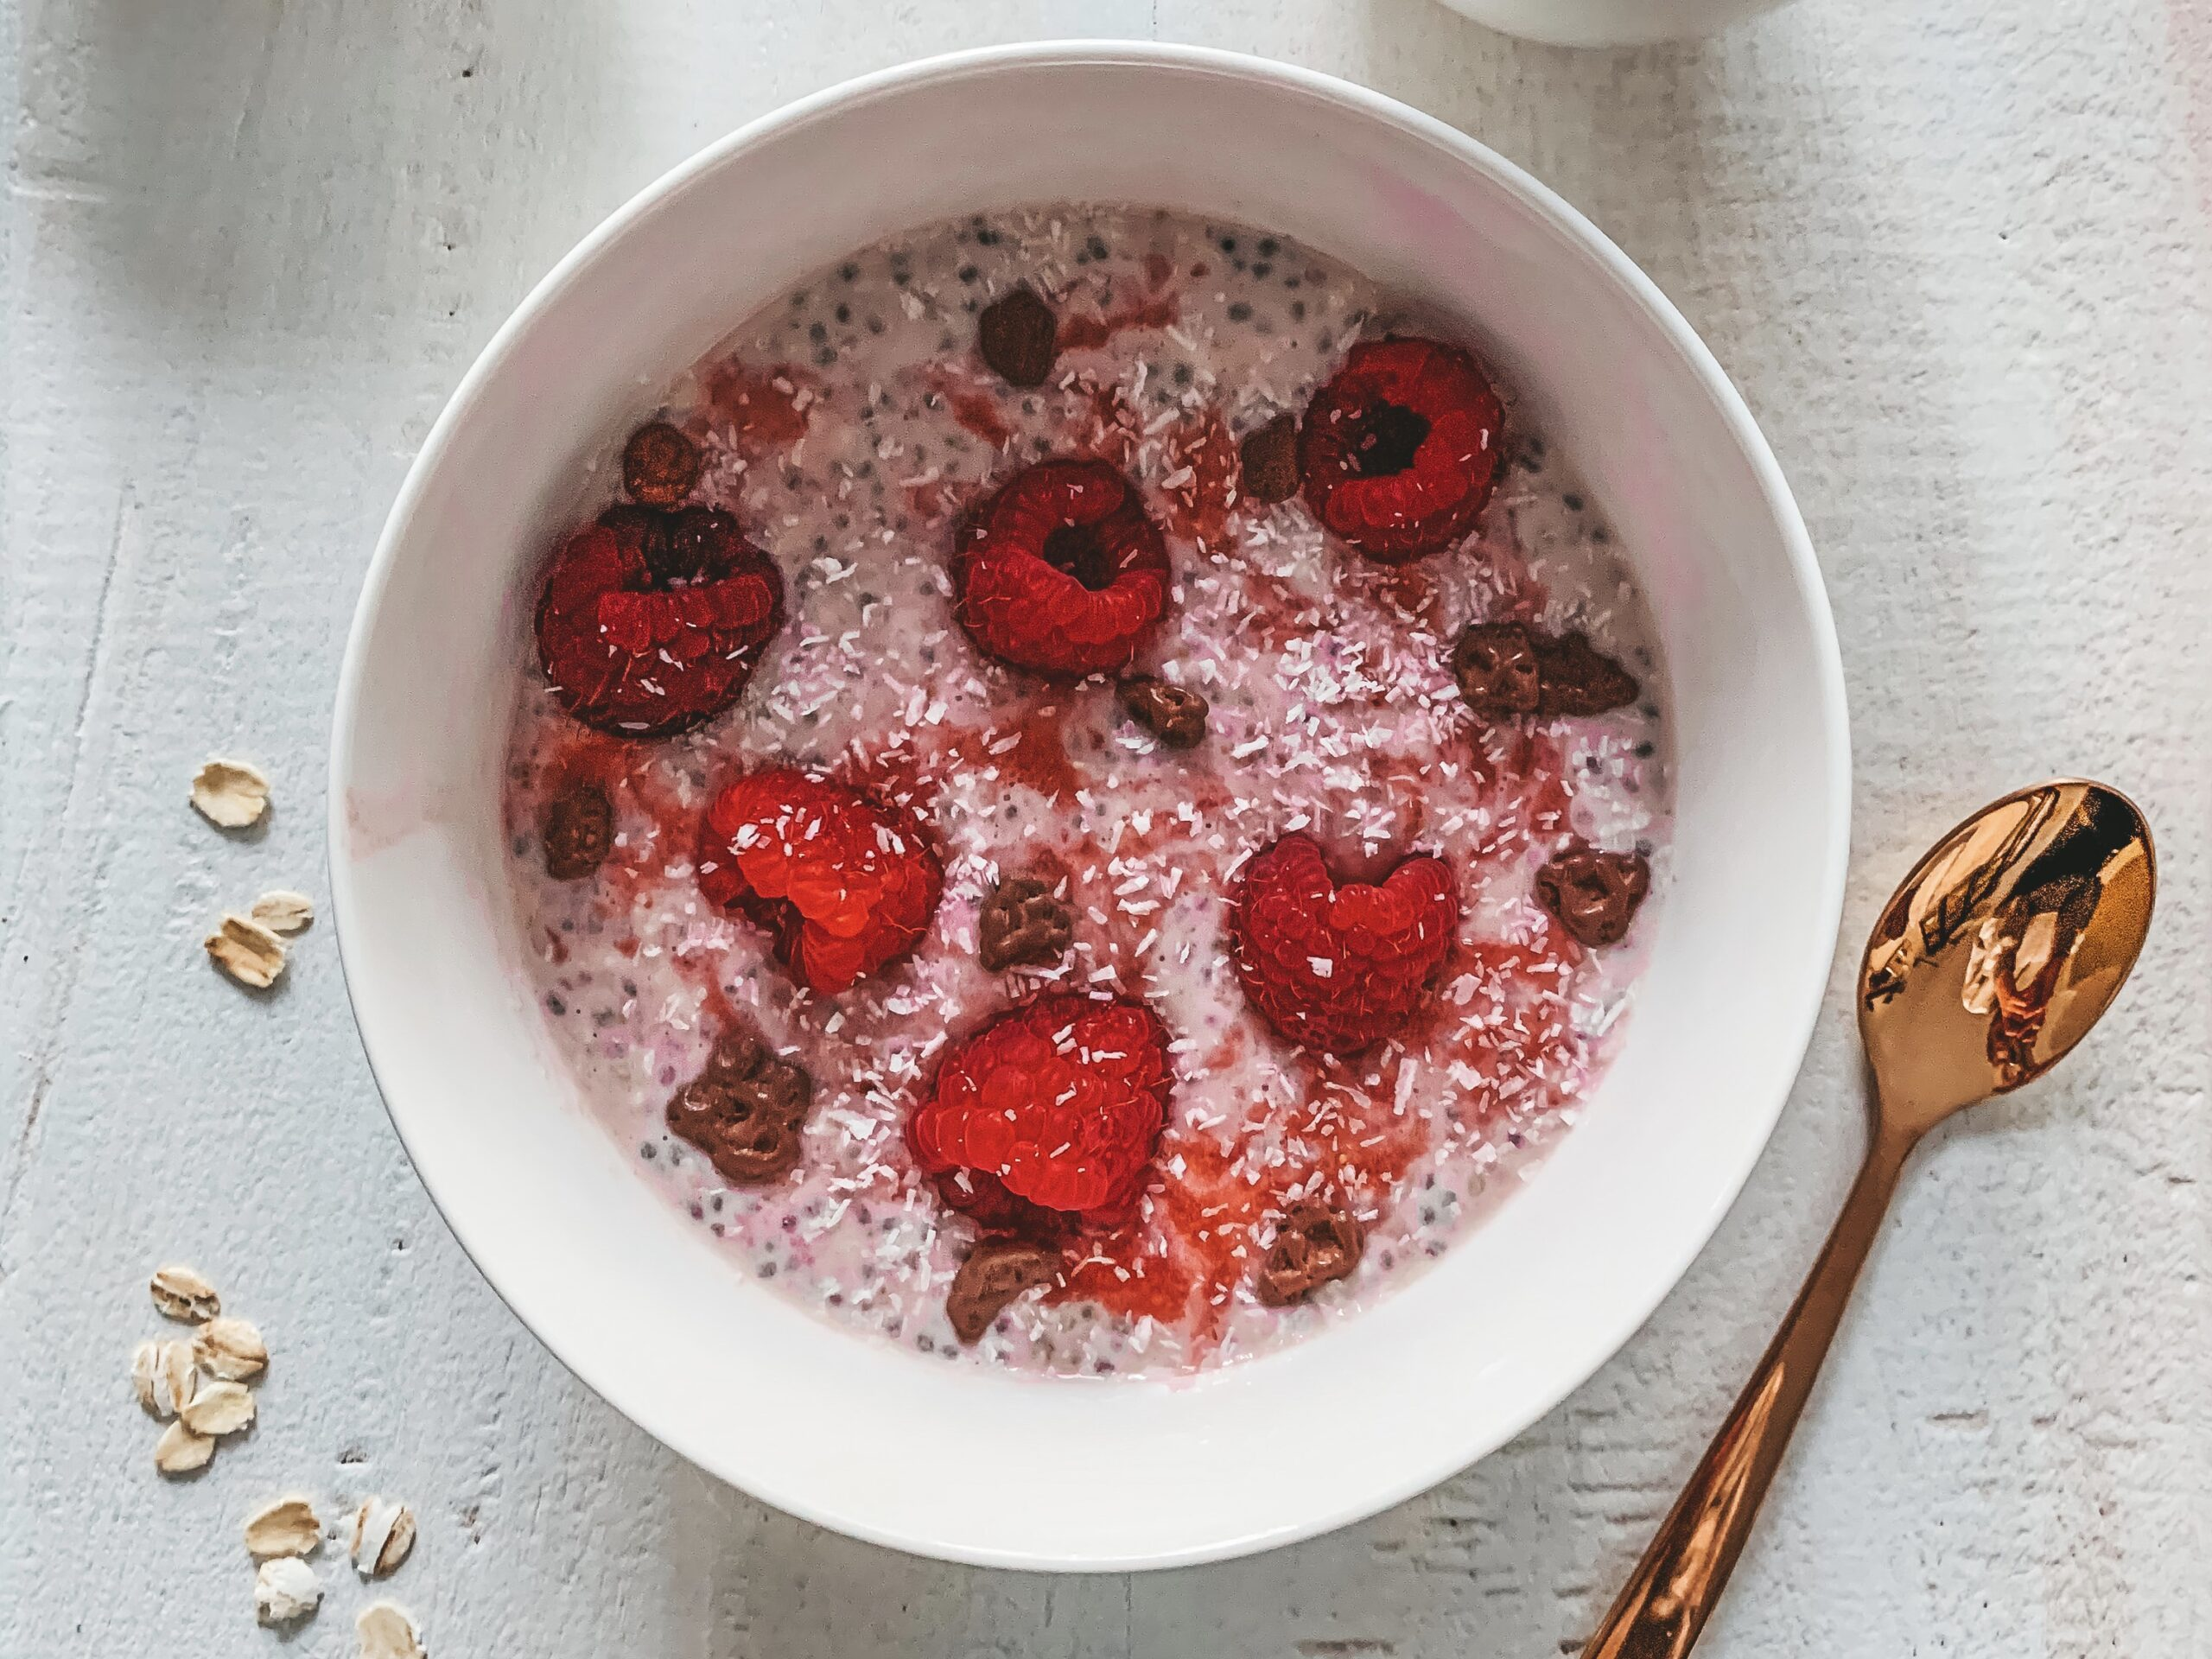 Aardbeien chia pudding met havermout